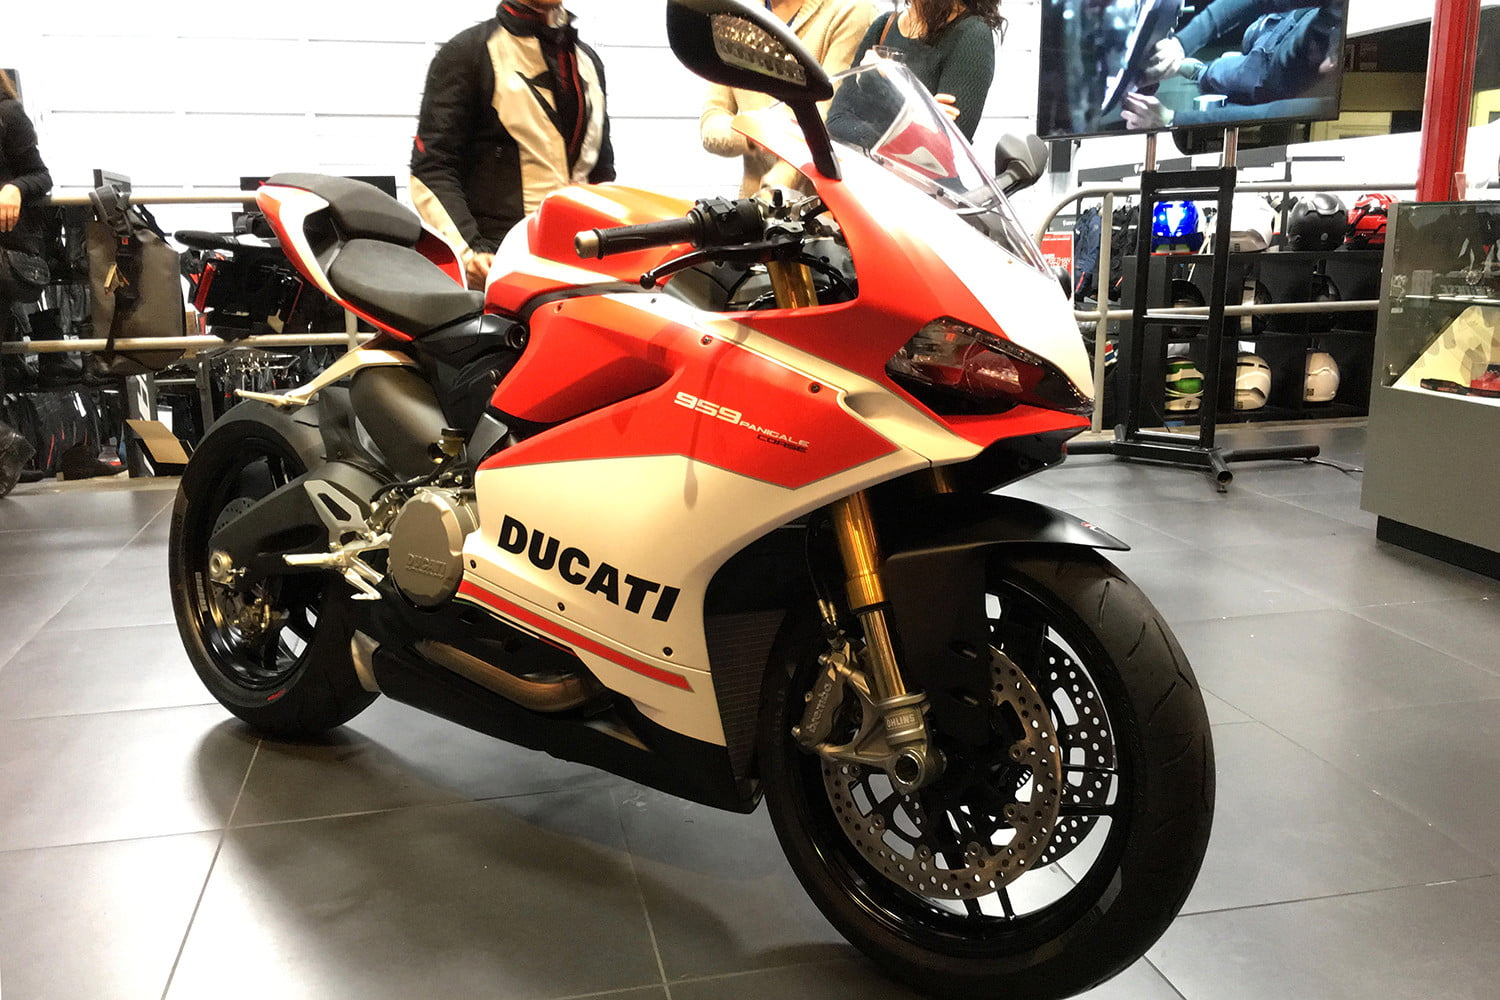 ducati 2018 motorcycle preview panigale 959 corse full1